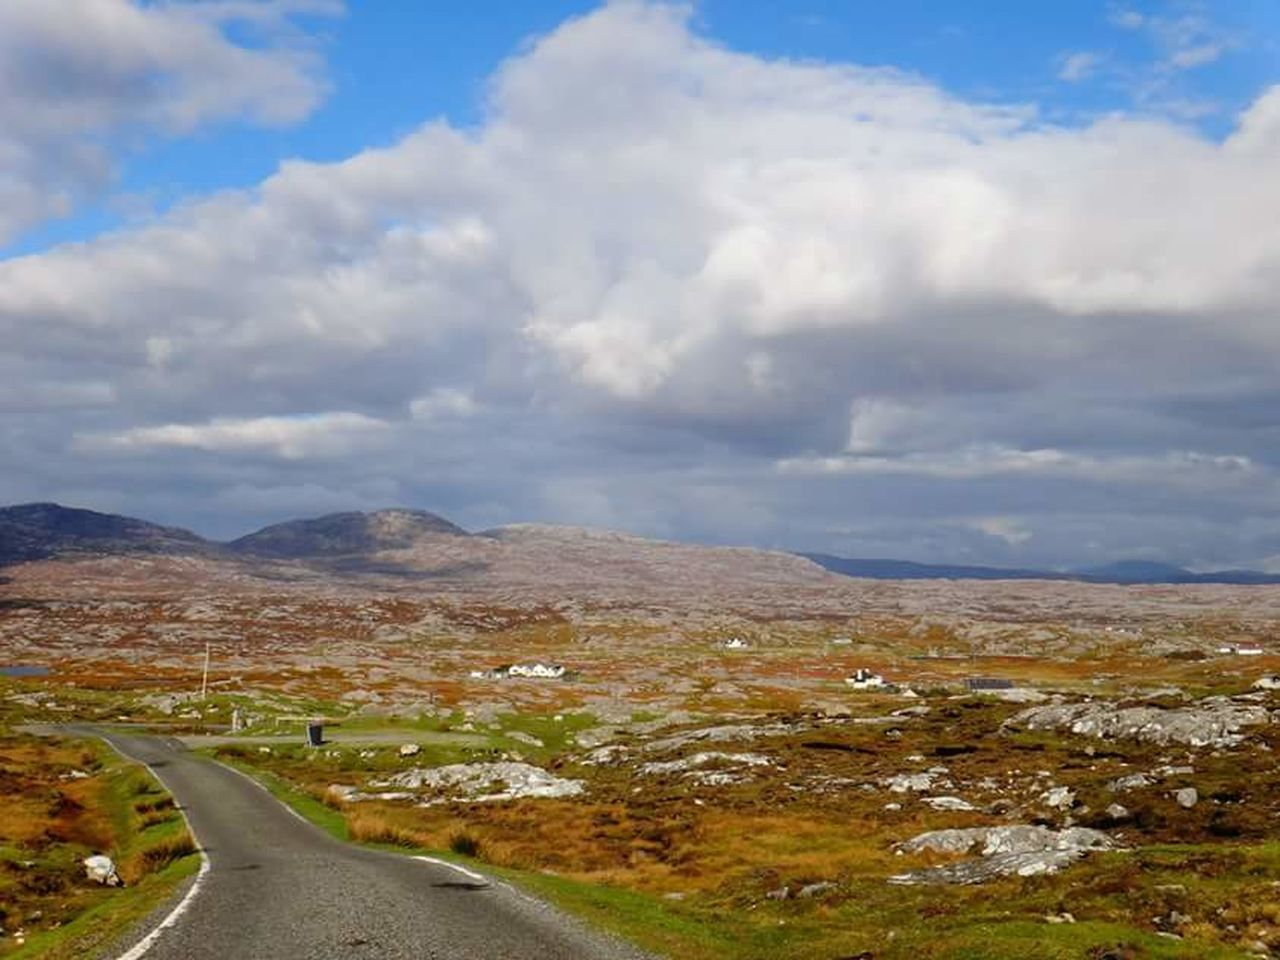 road, cloud - sky, sky, the way forward, nature, scenics, no people, tranquility, outdoors, landscape, tranquil scene, day, transportation, beauty in nature, mountain, curve, winding road